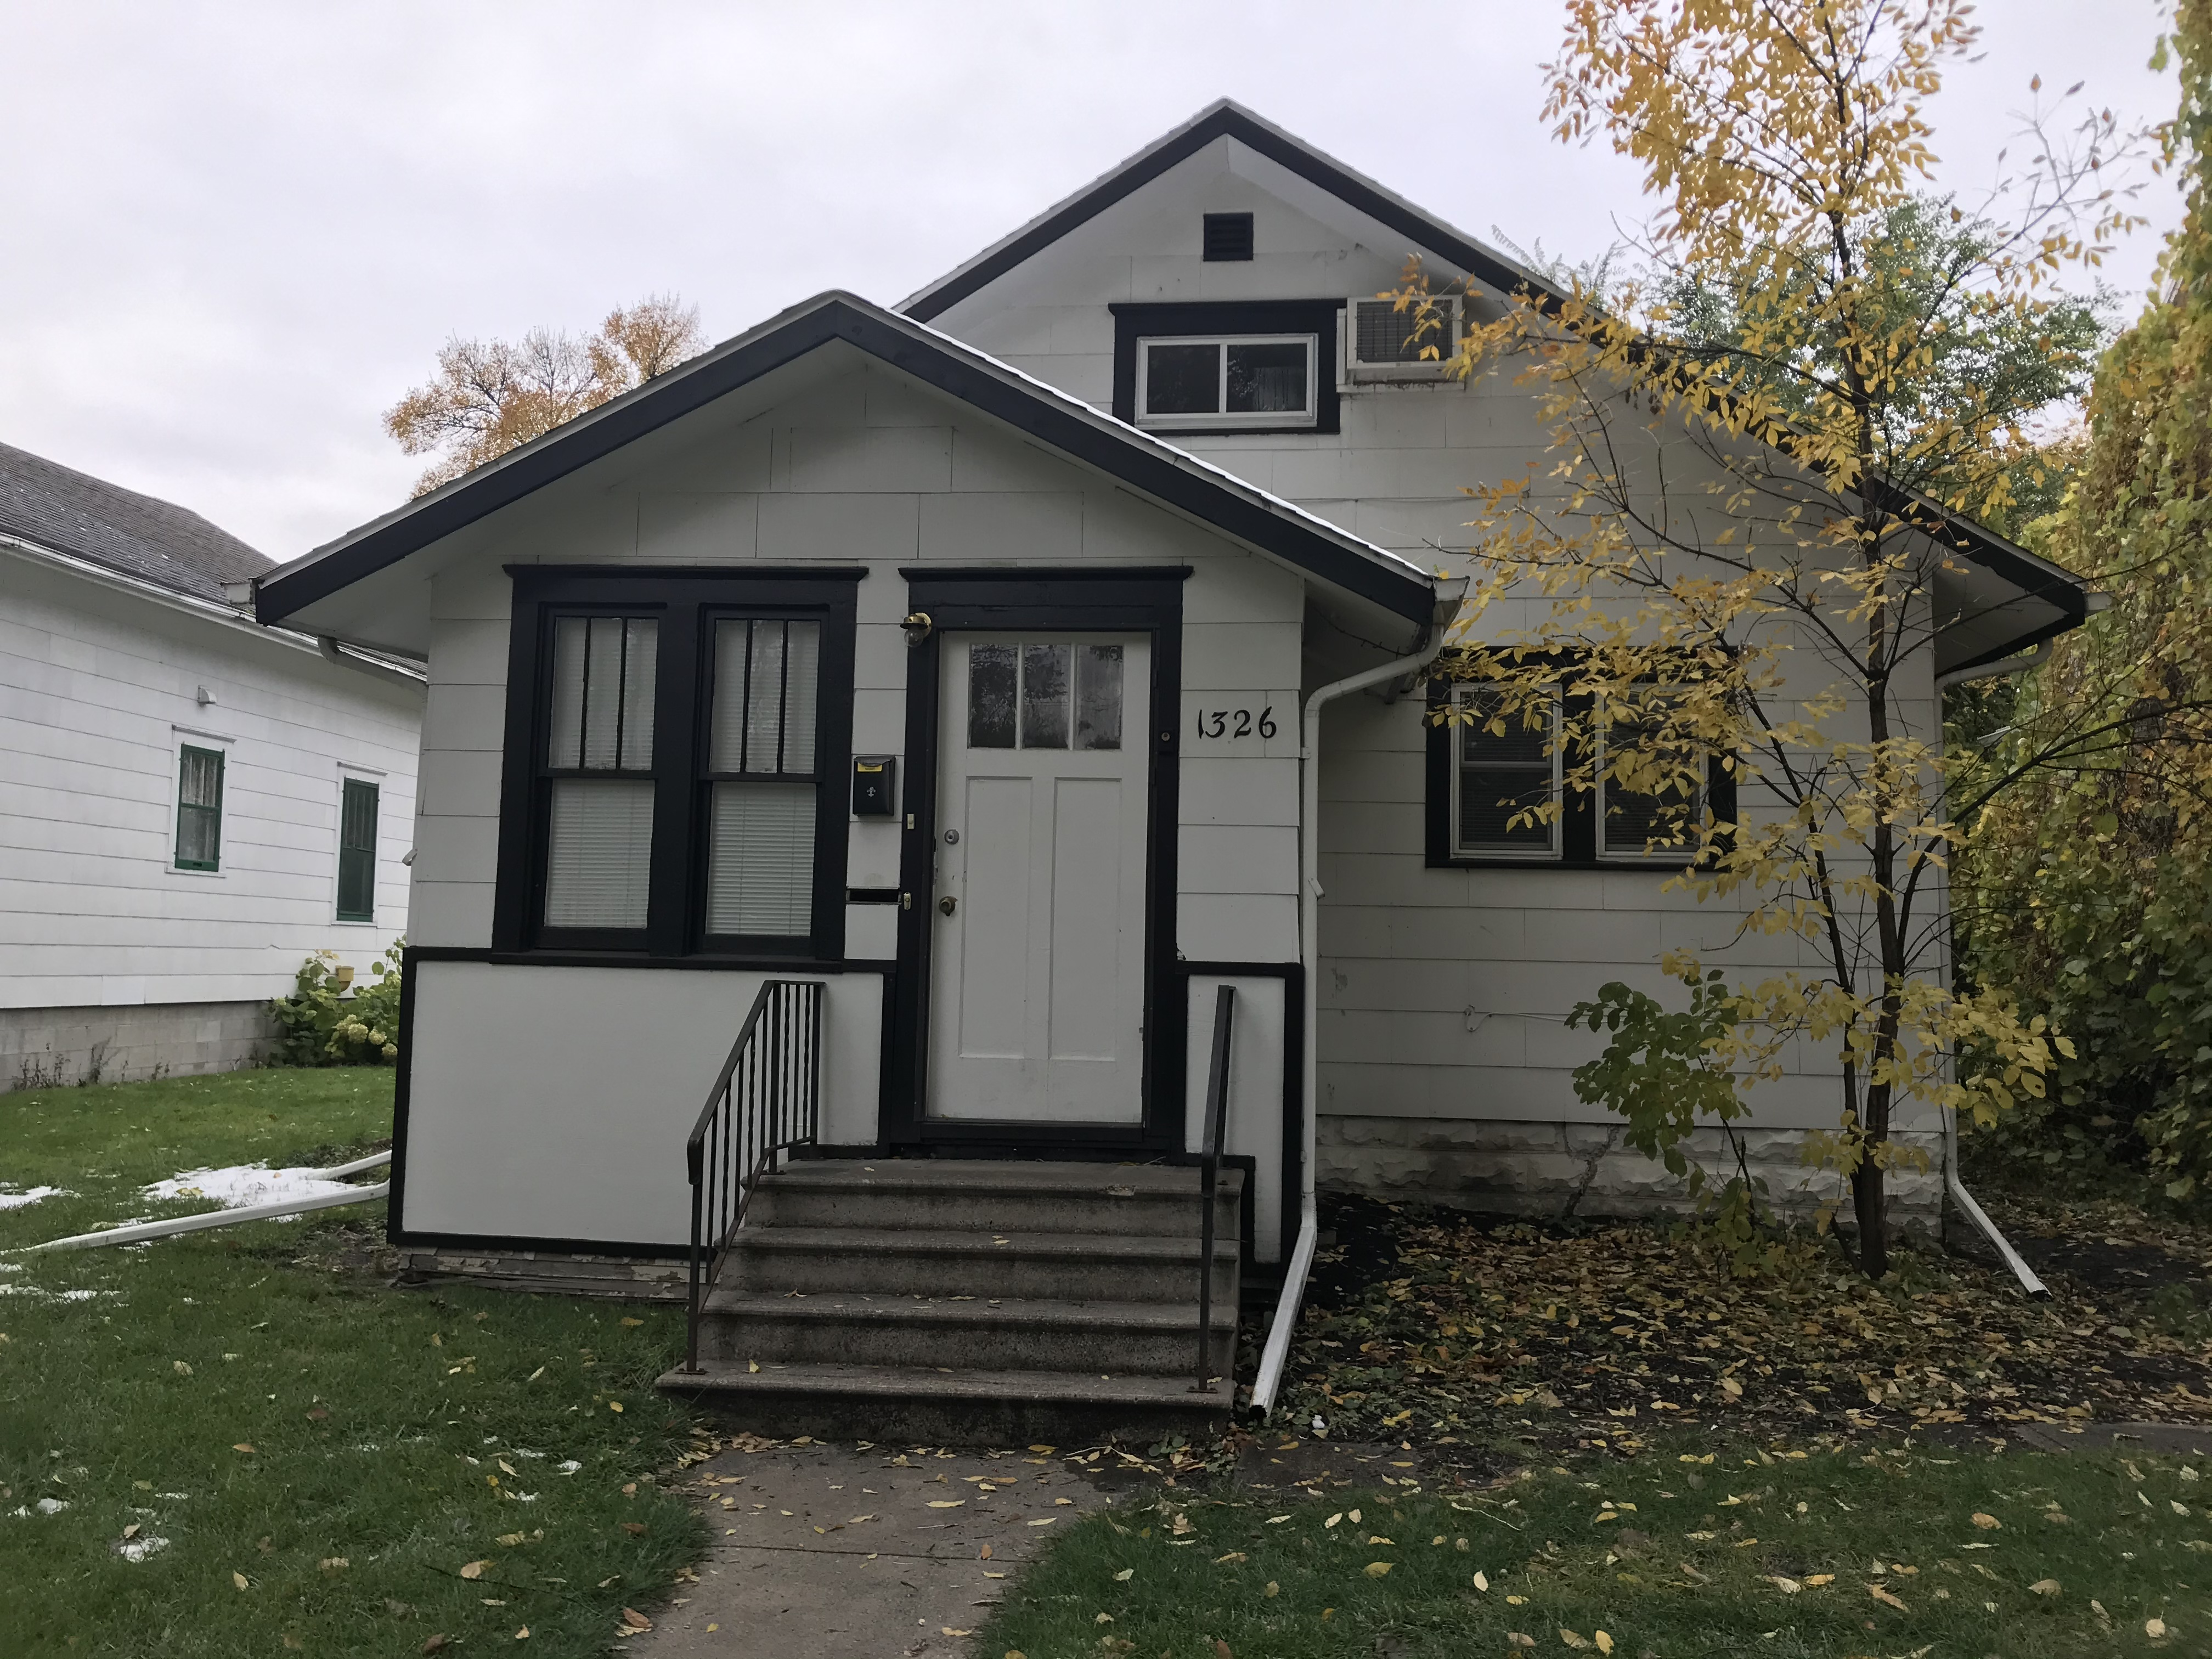 2 Bed / 1 Bath House .01 miles from NDSU! Available Aug 1st!